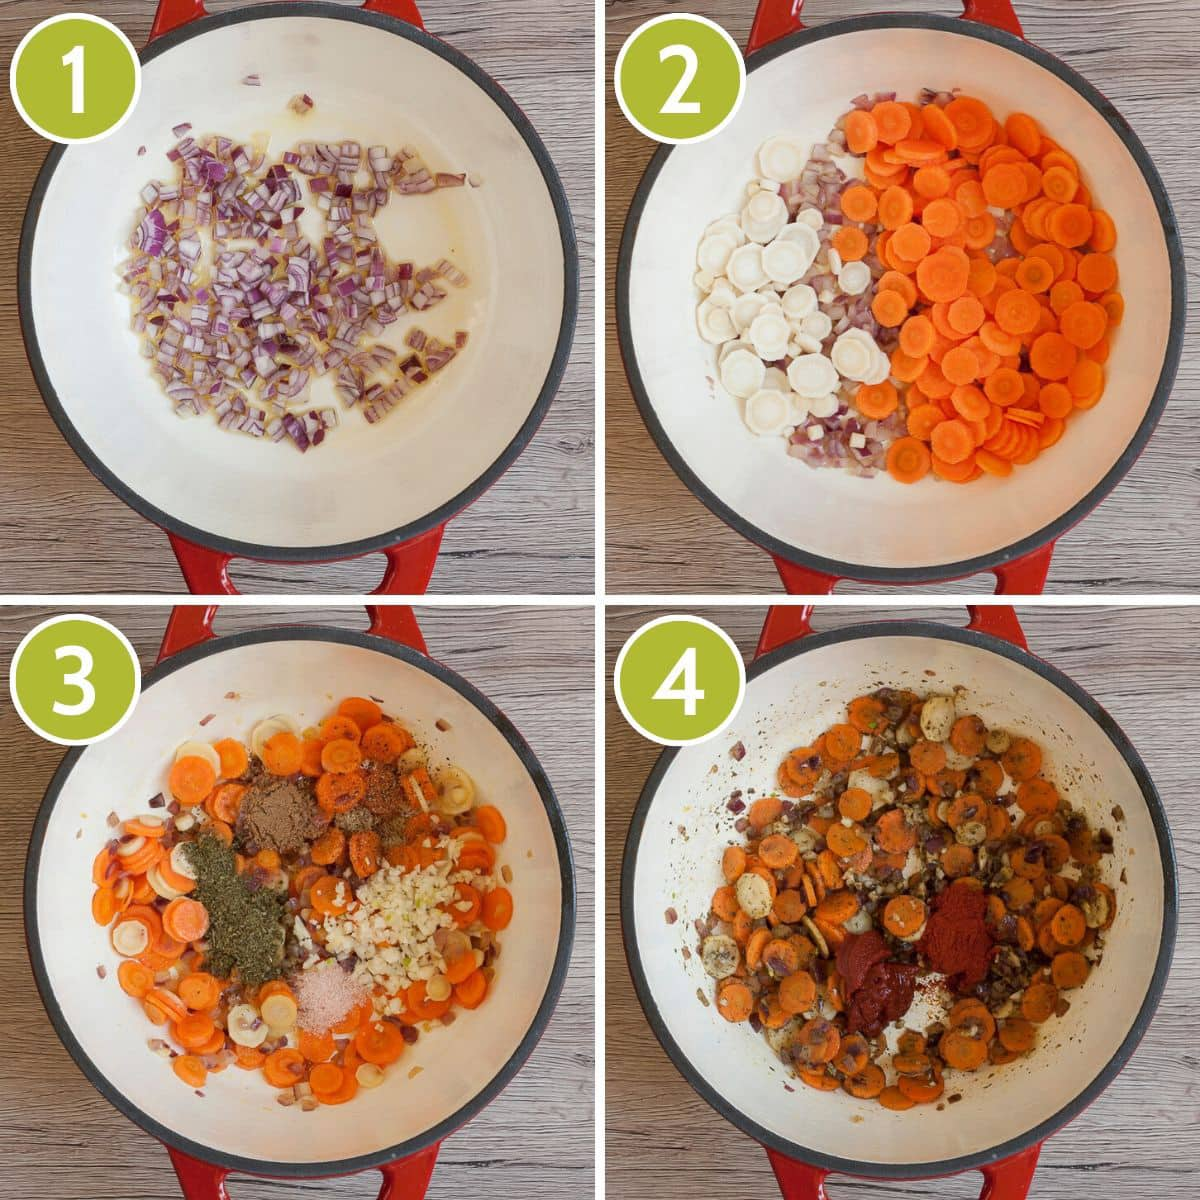 step photos to make a vegetable base for a Hungarian goulash